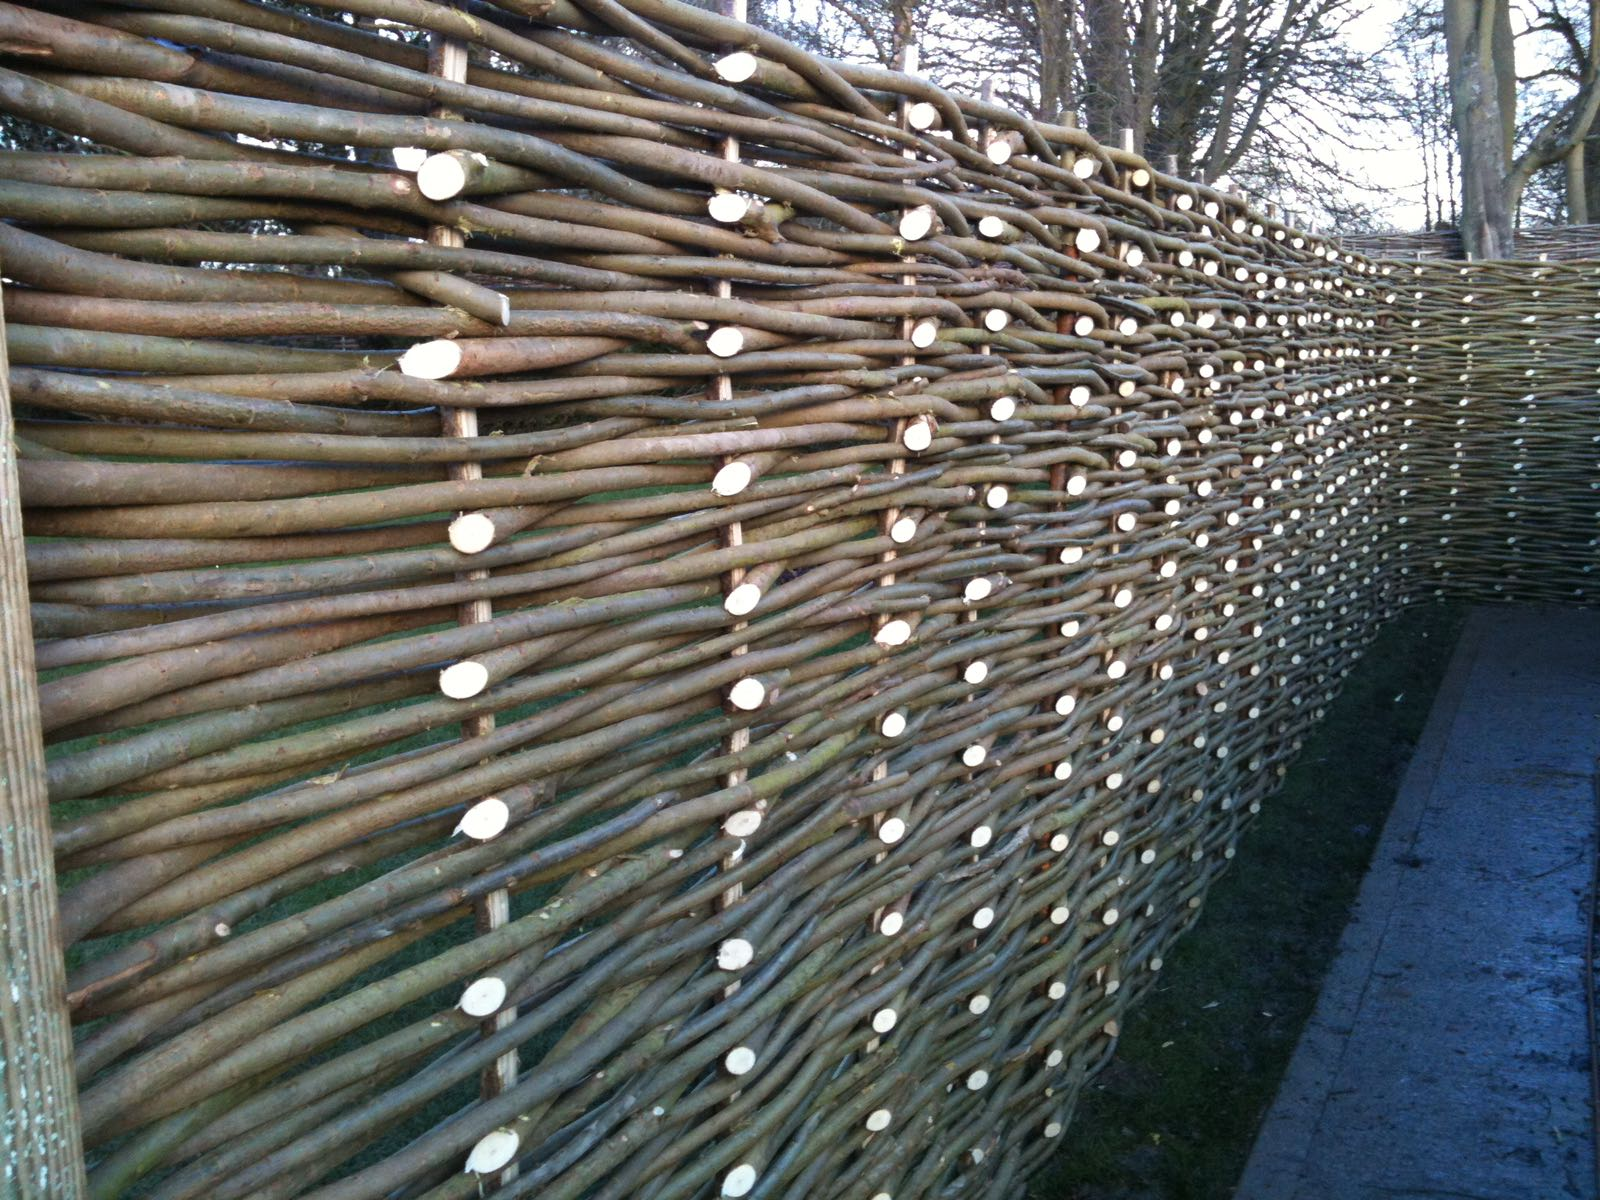 'The backs' Woven Willow